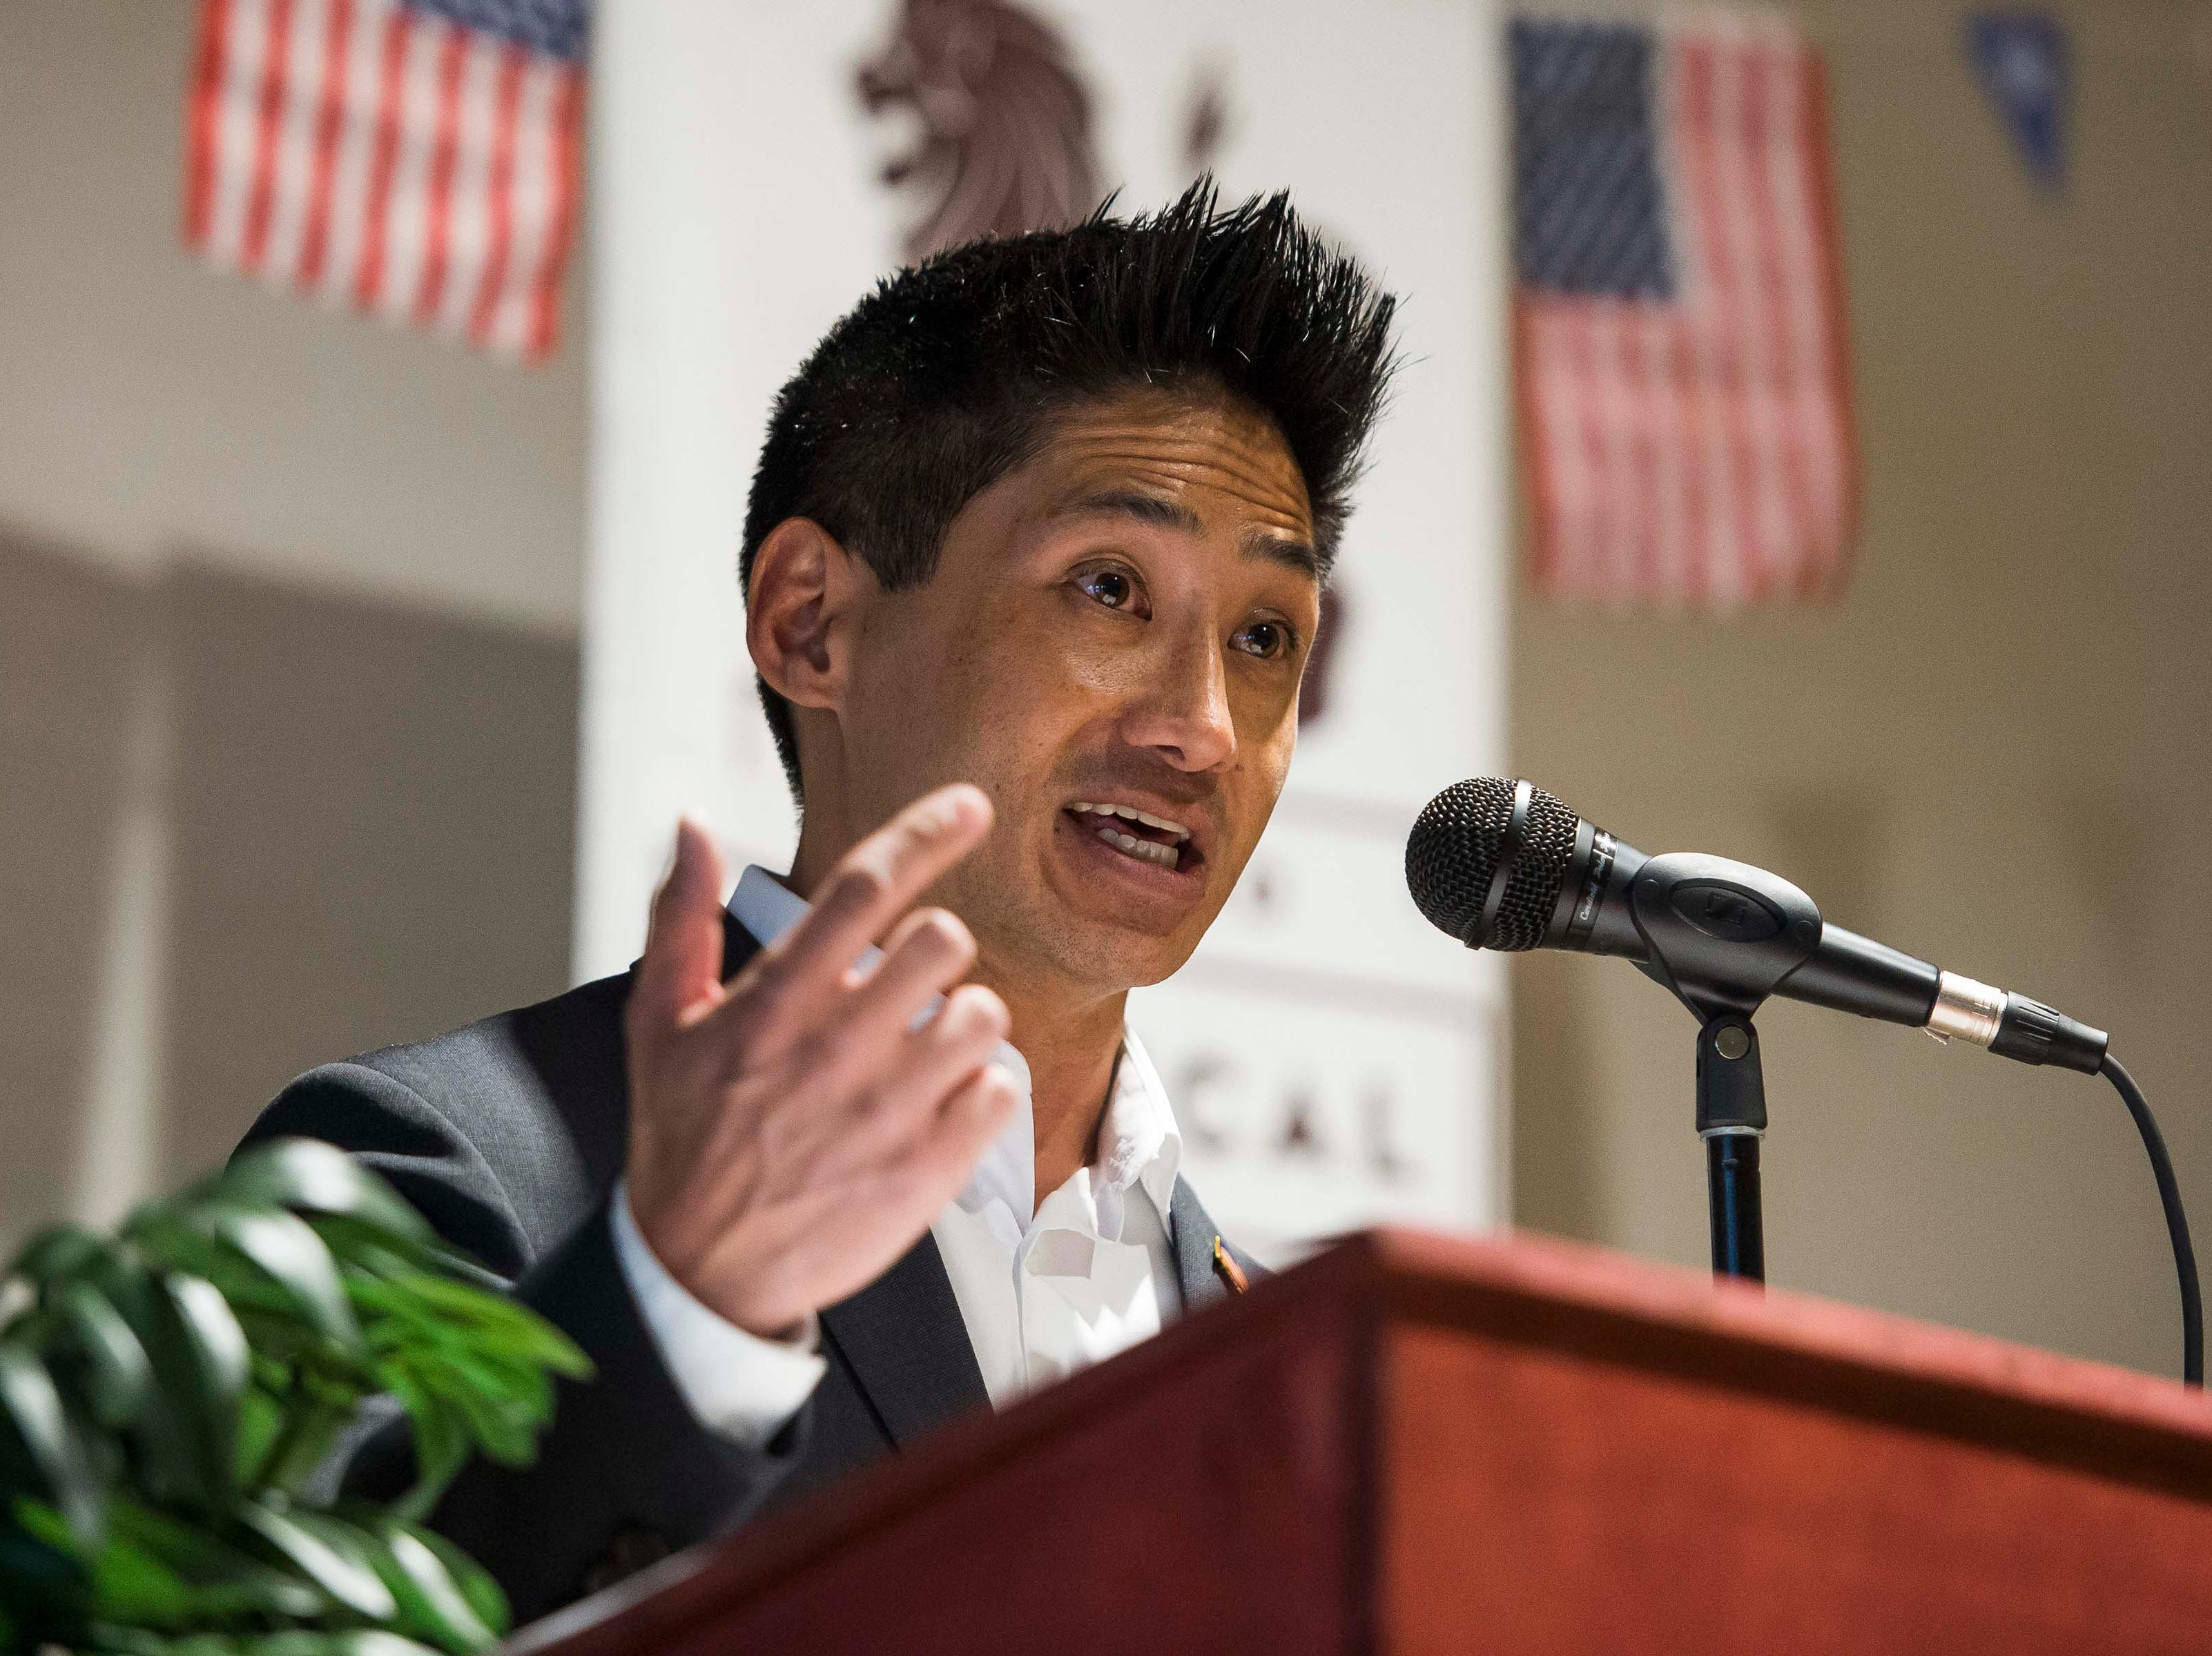 Colorado's 2nd Congressional District Republican Peter Yu gives his opening statement before participated in a debate with Democratic nominee Joe Neguse on Wednesday, Sept. 26, 2018, at the Loveland Classical Schools in Loveland, Colo.